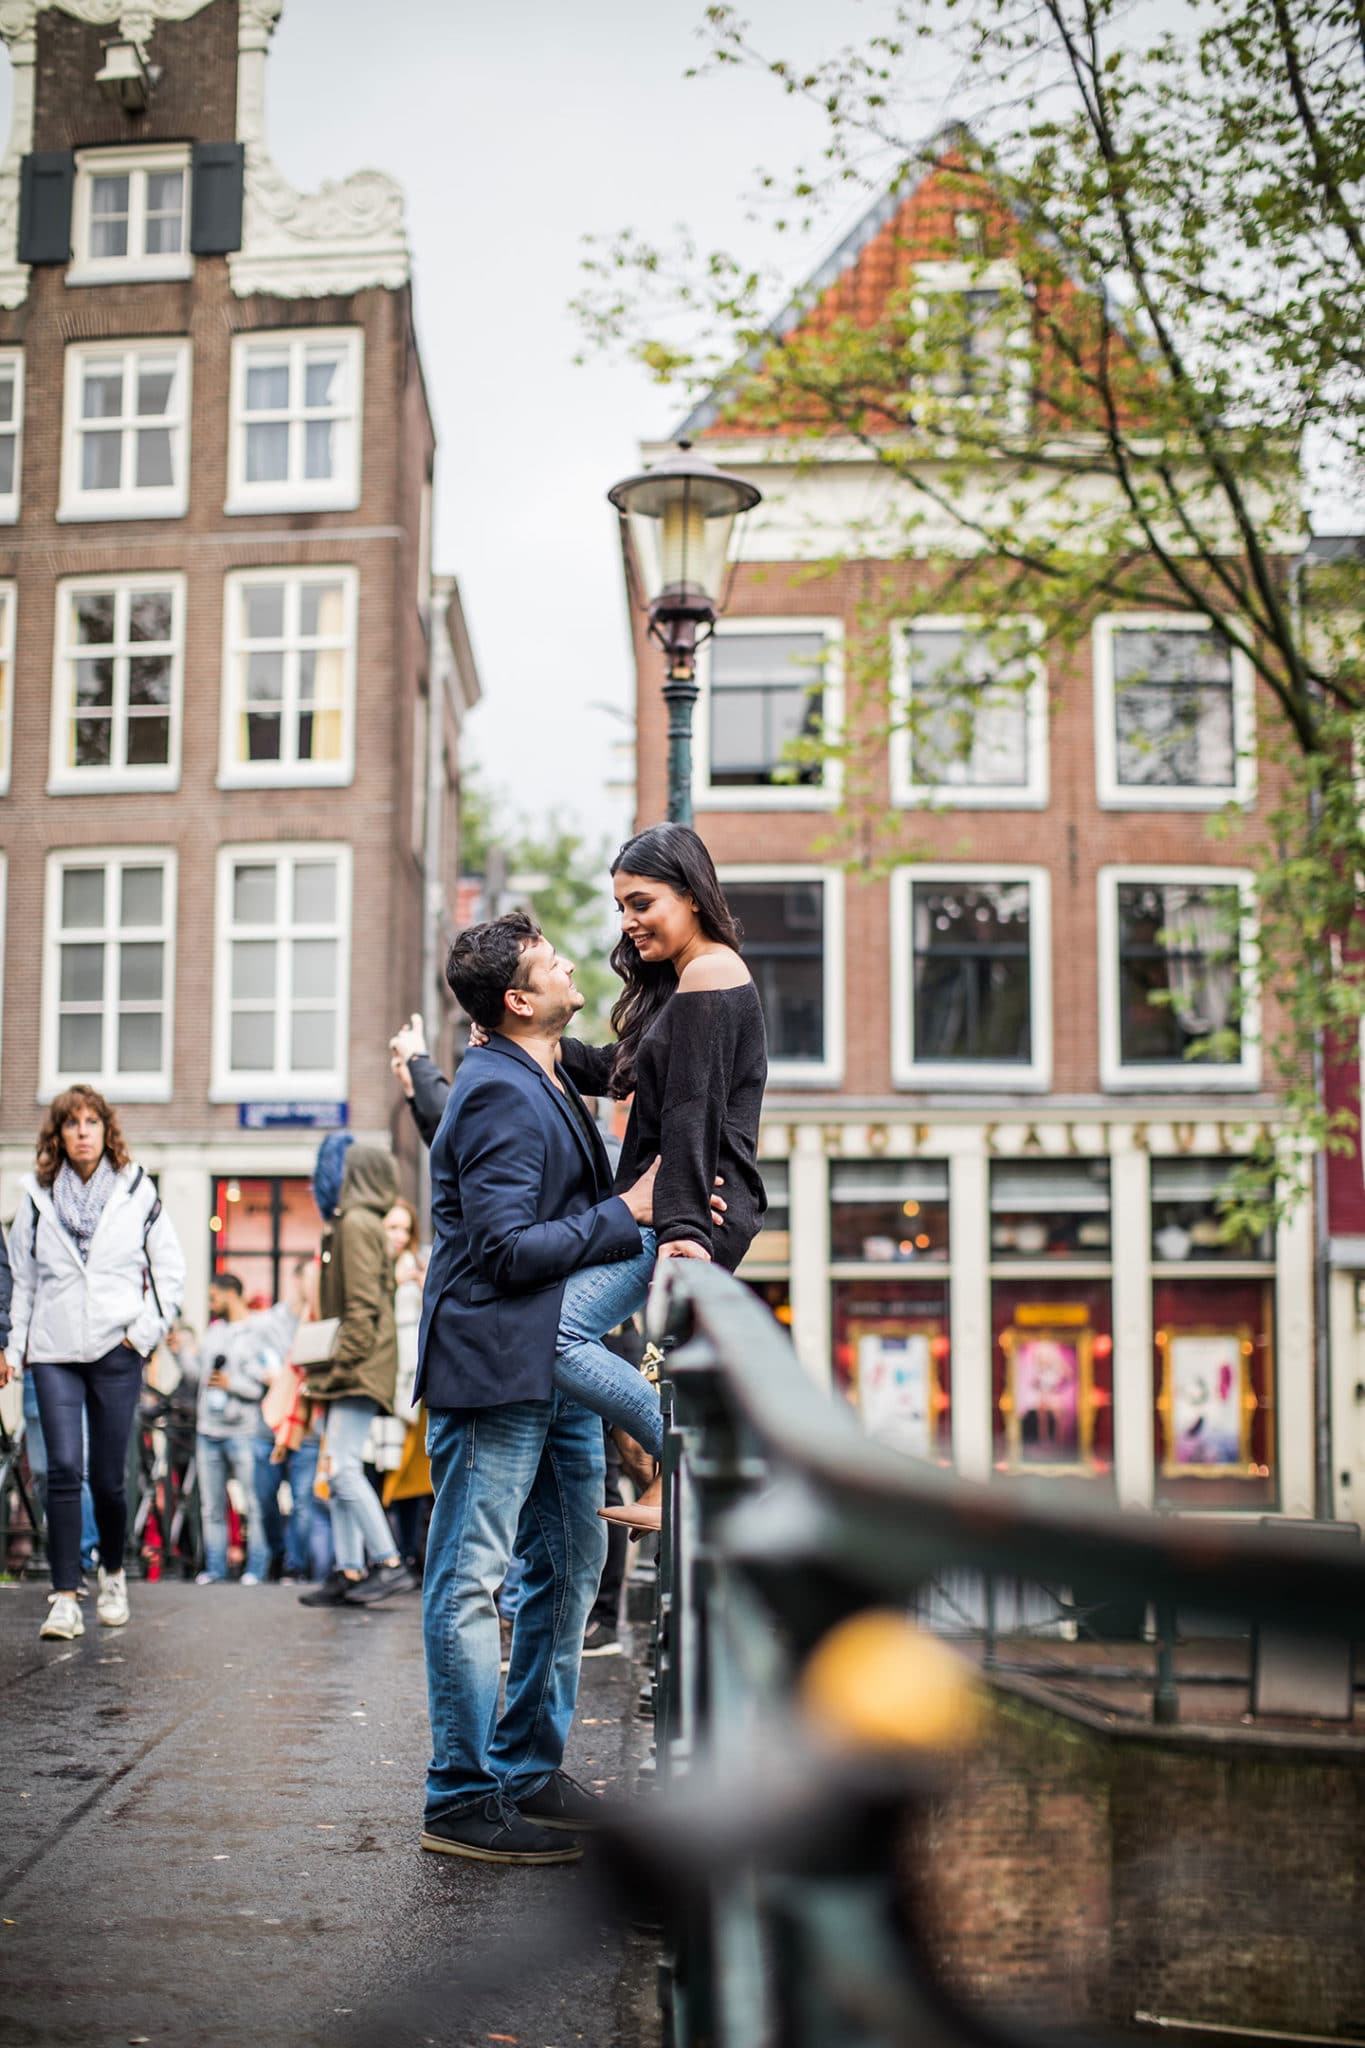 Prewedding photography in Amsterdam